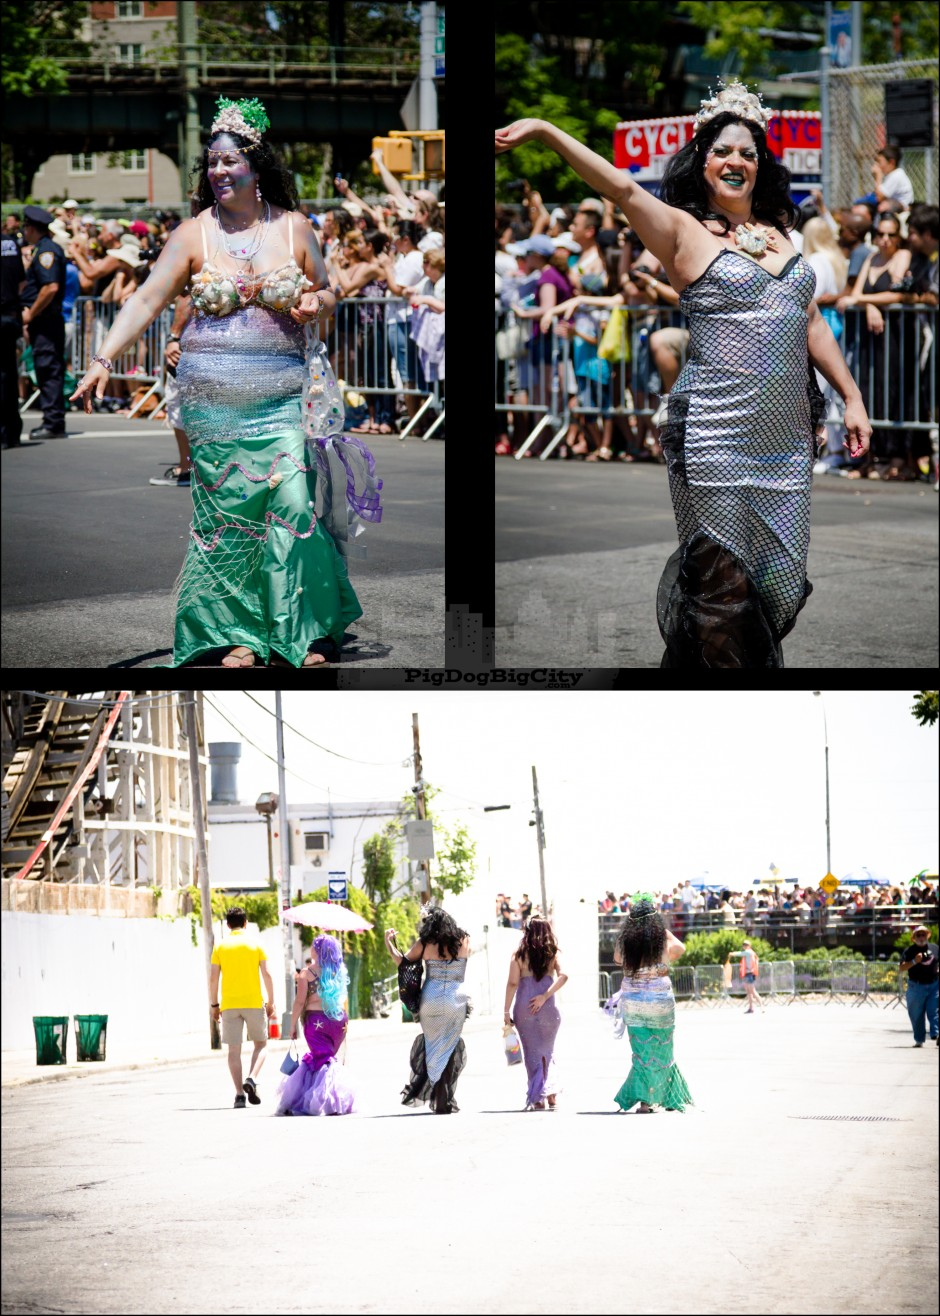 Mermaid Parade 6